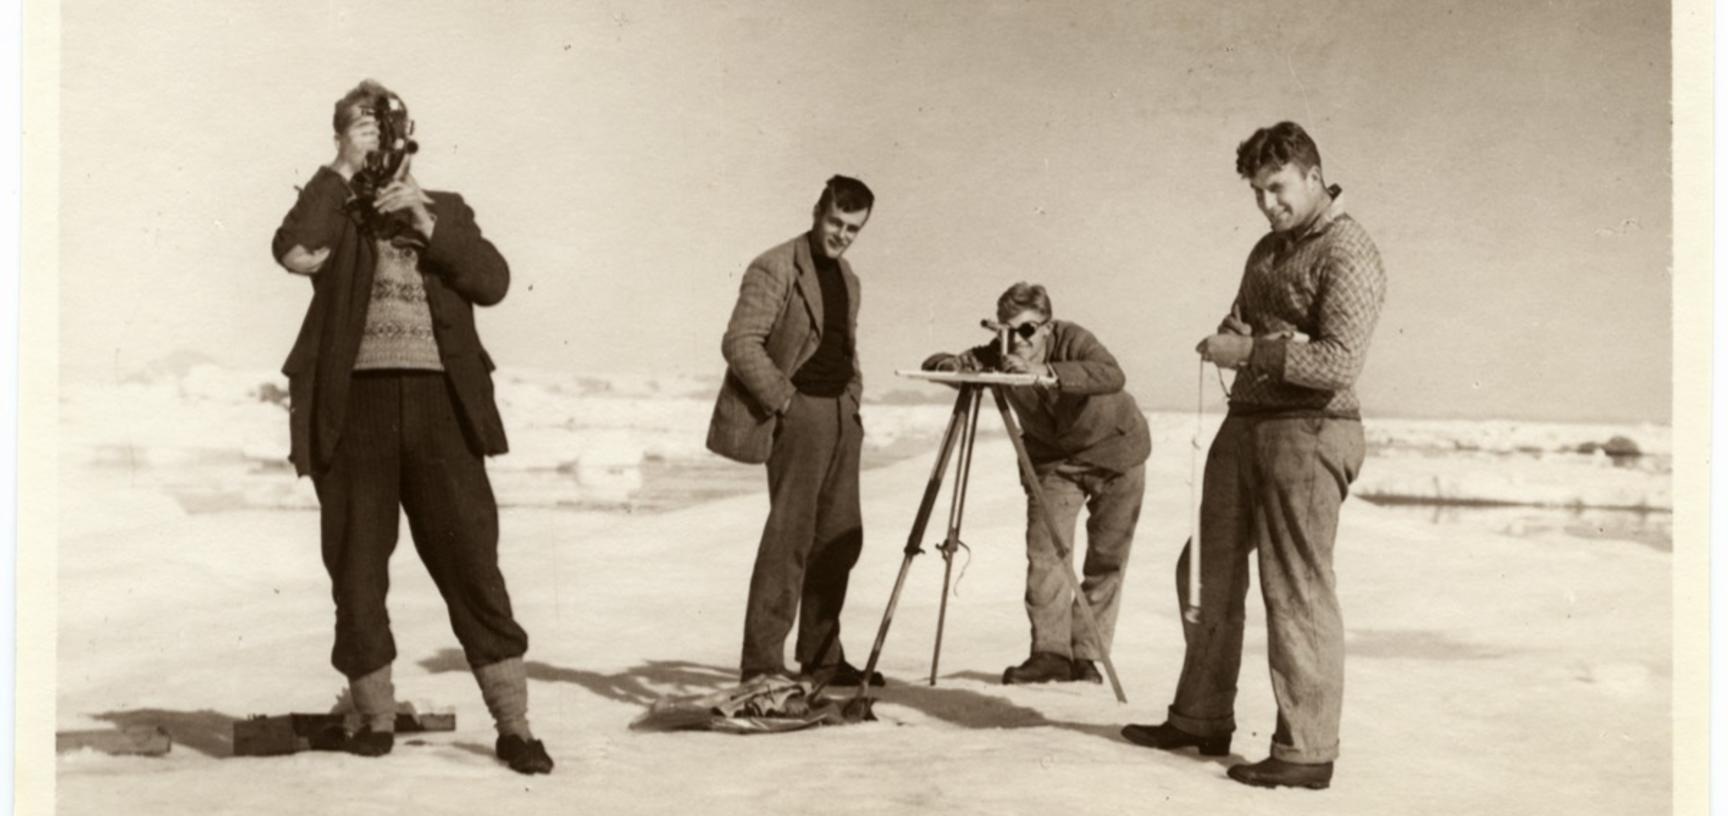 Group portait of expedition members L. R. Wagner, Augustine Courtauld, Alfred Stephenson and Wilfred Hampton posing with surveying equipment. Photograph by Henry Iliffe Cozens. Greenland. 1930–1931.